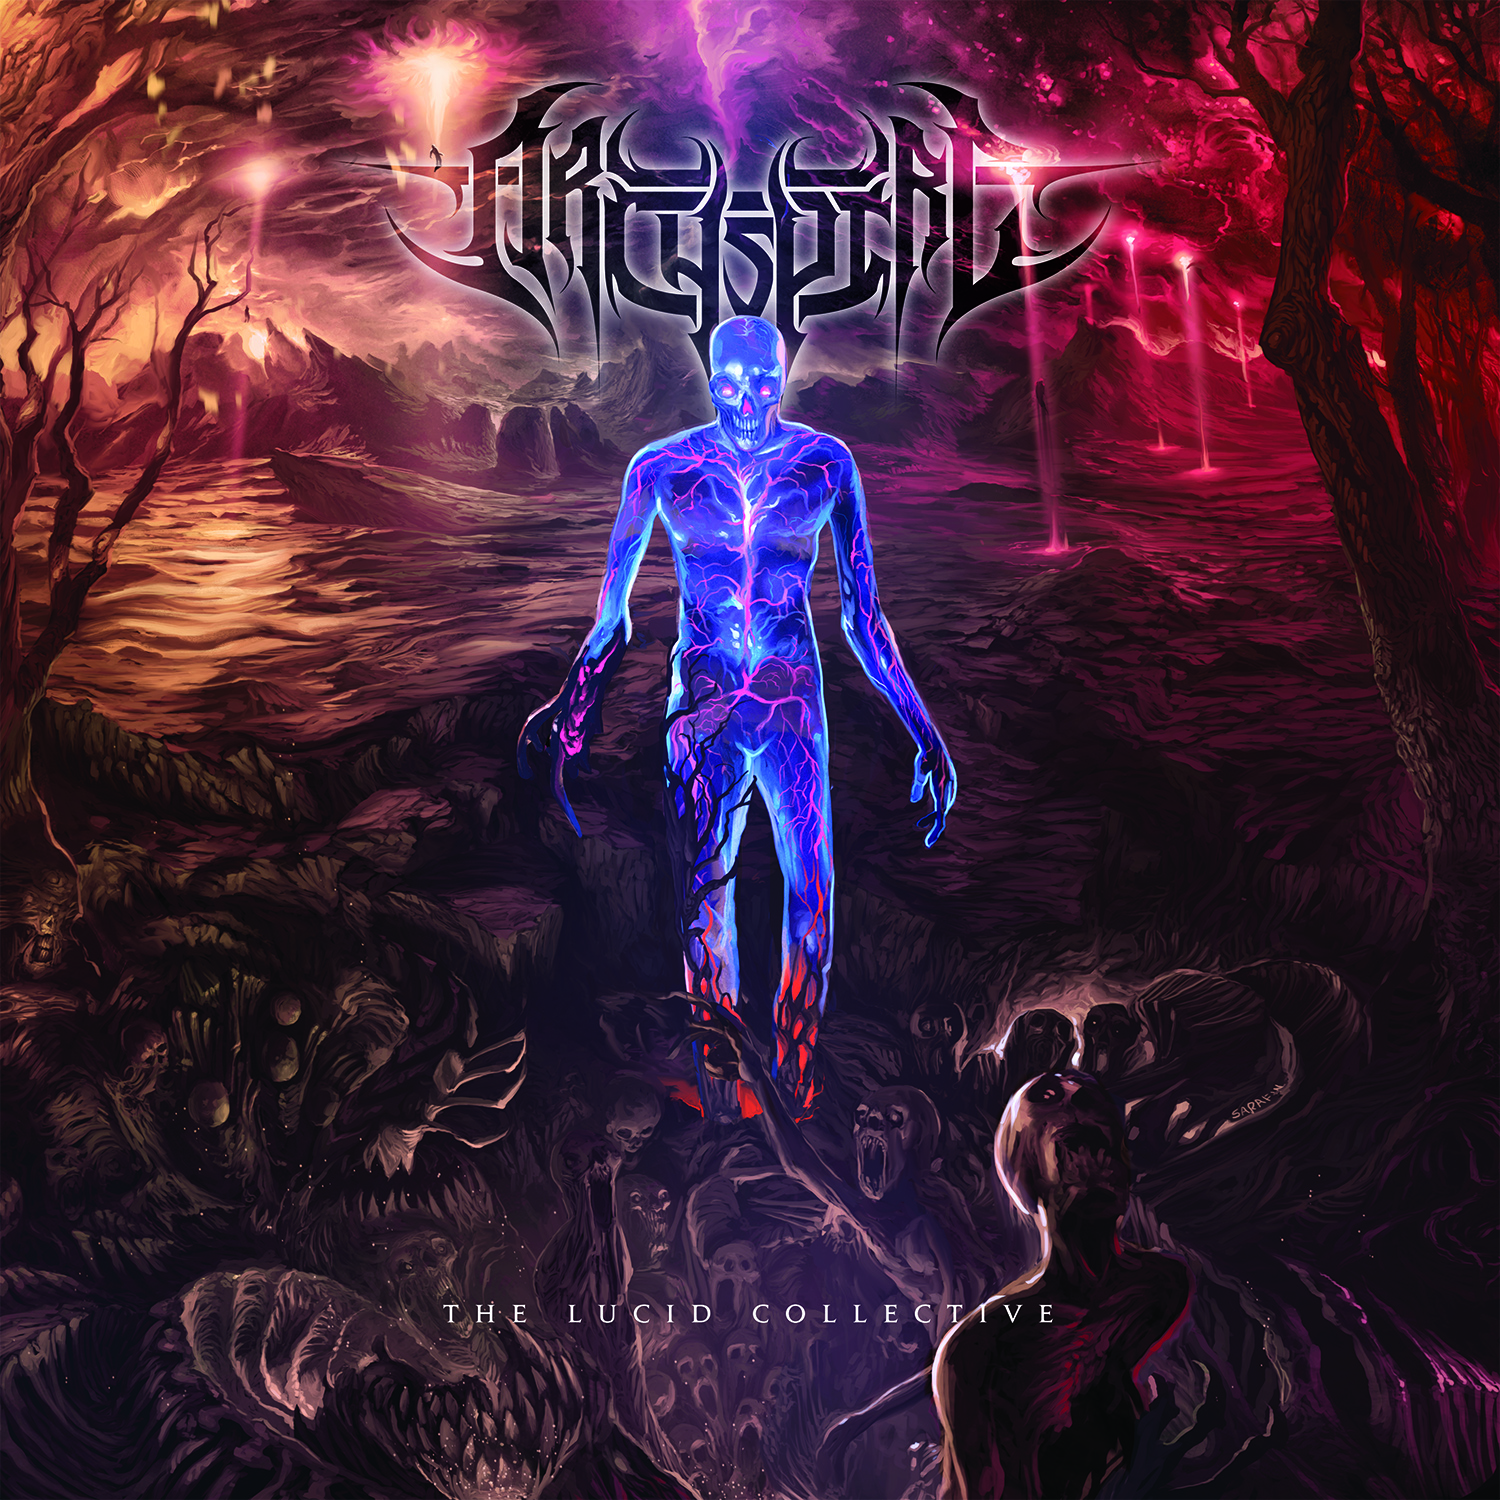 Things You Might Have Missed 2014: Archspire – The Lucid Collective